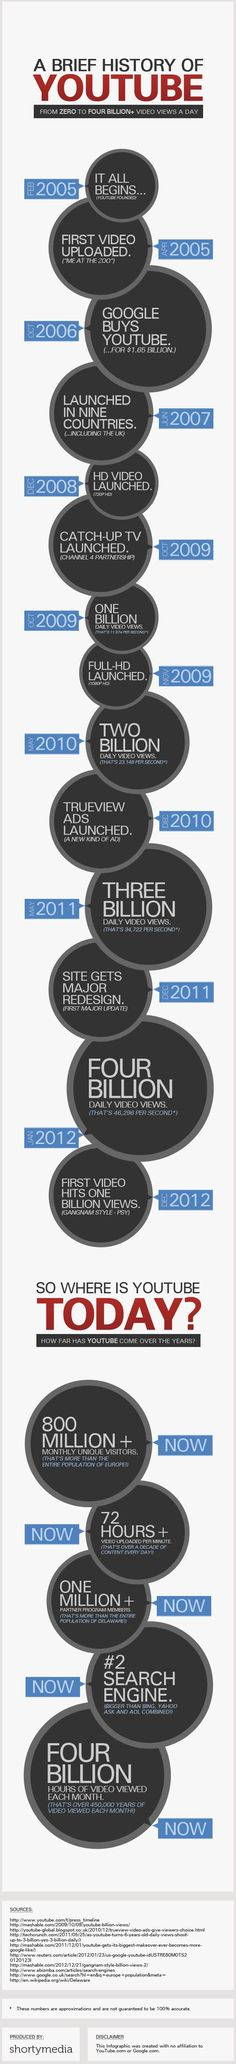 A Brief History Of YouTube #infographic